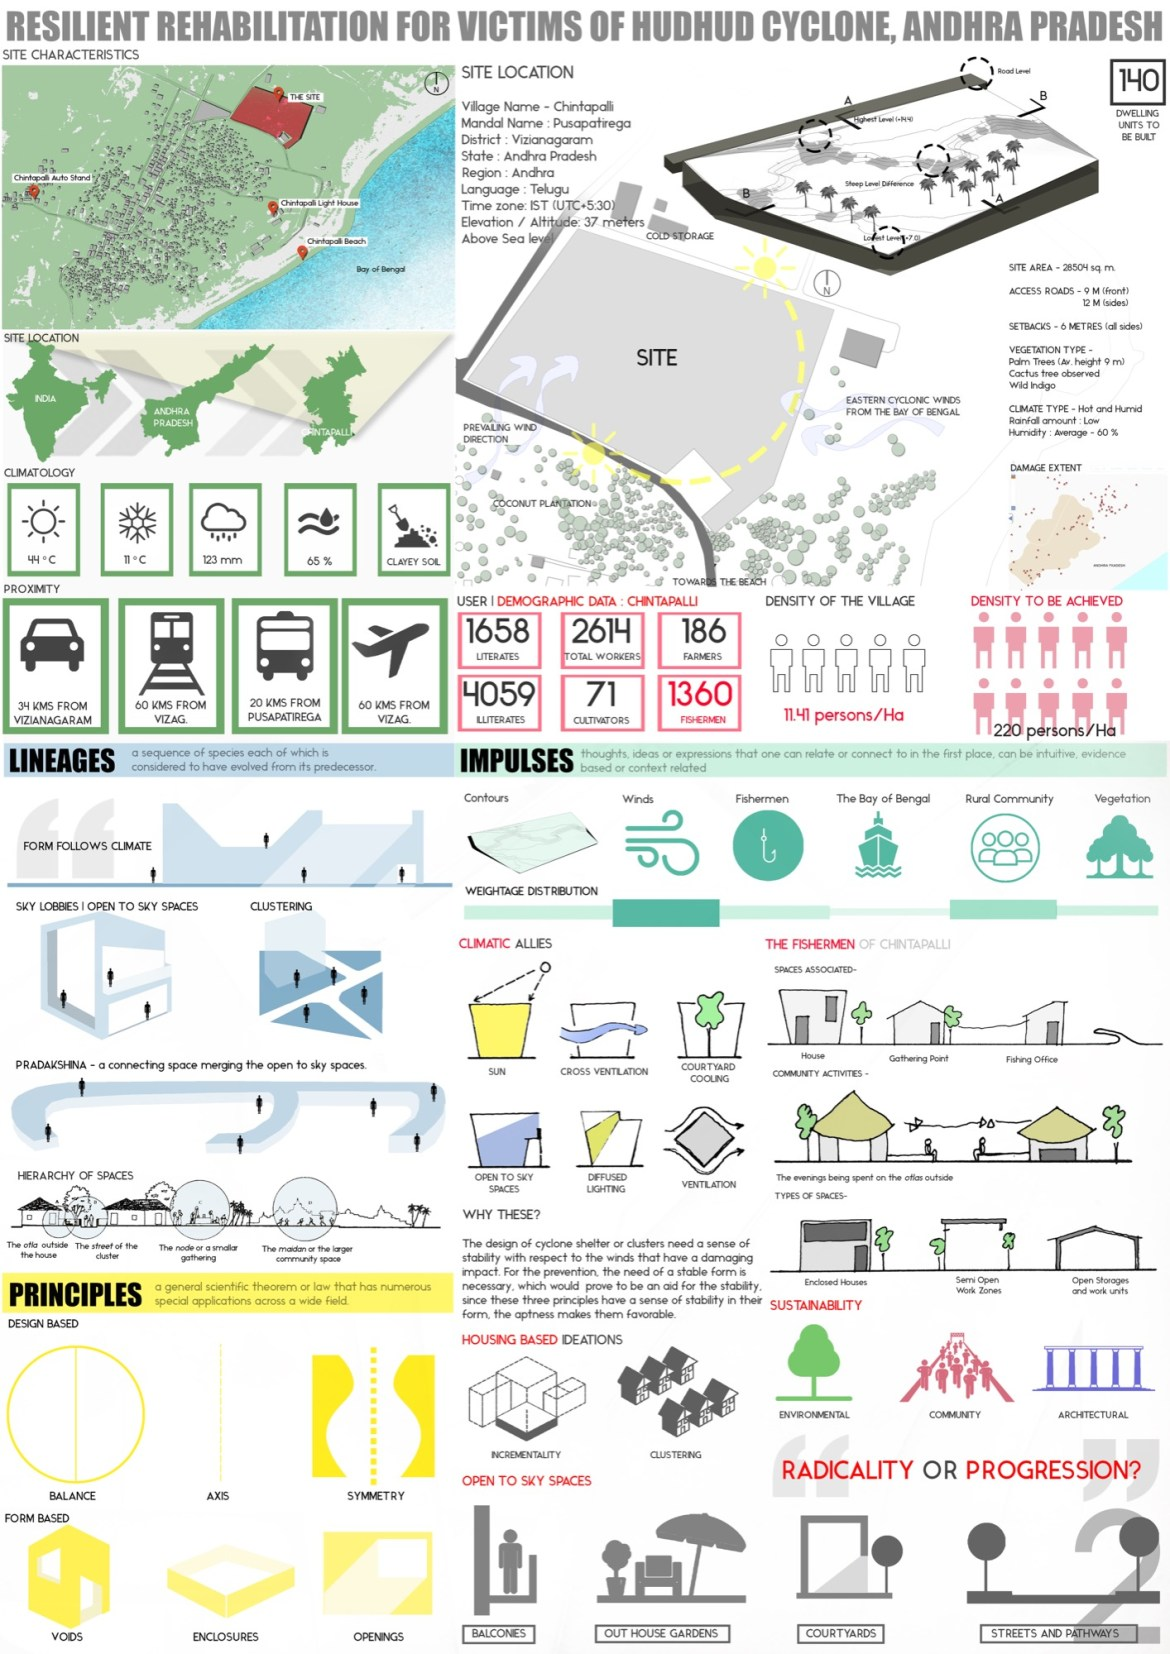 B.Arch Thesis: RESILIENT REHABILITATION FOR VICTIMS OF HUDHUD CYCLONE, ANDHRA PRADESH, by Sanand Telang 3